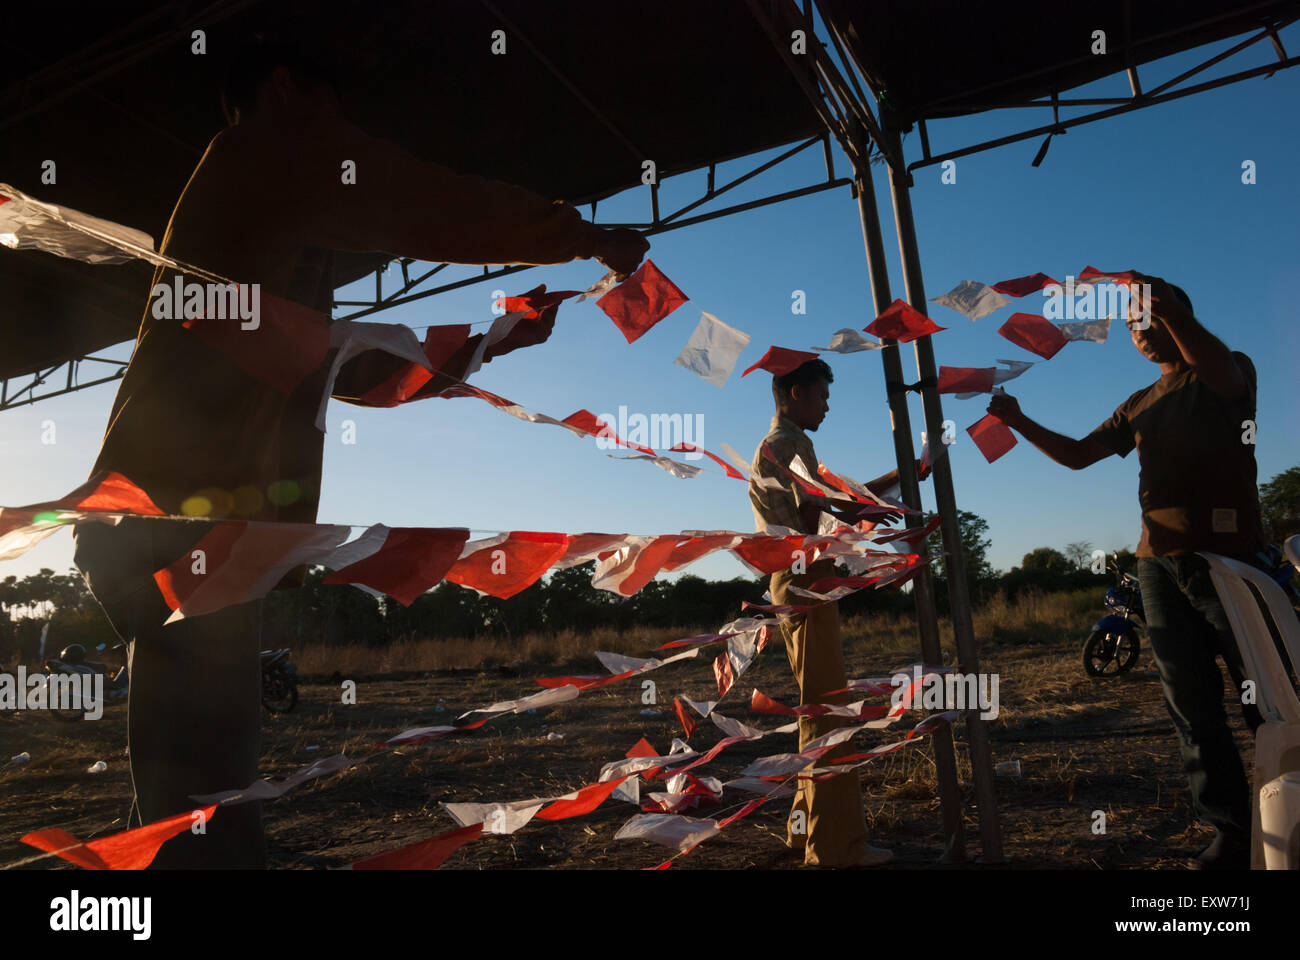 People hanging out Indonesian small flags for local event. - Stock Image